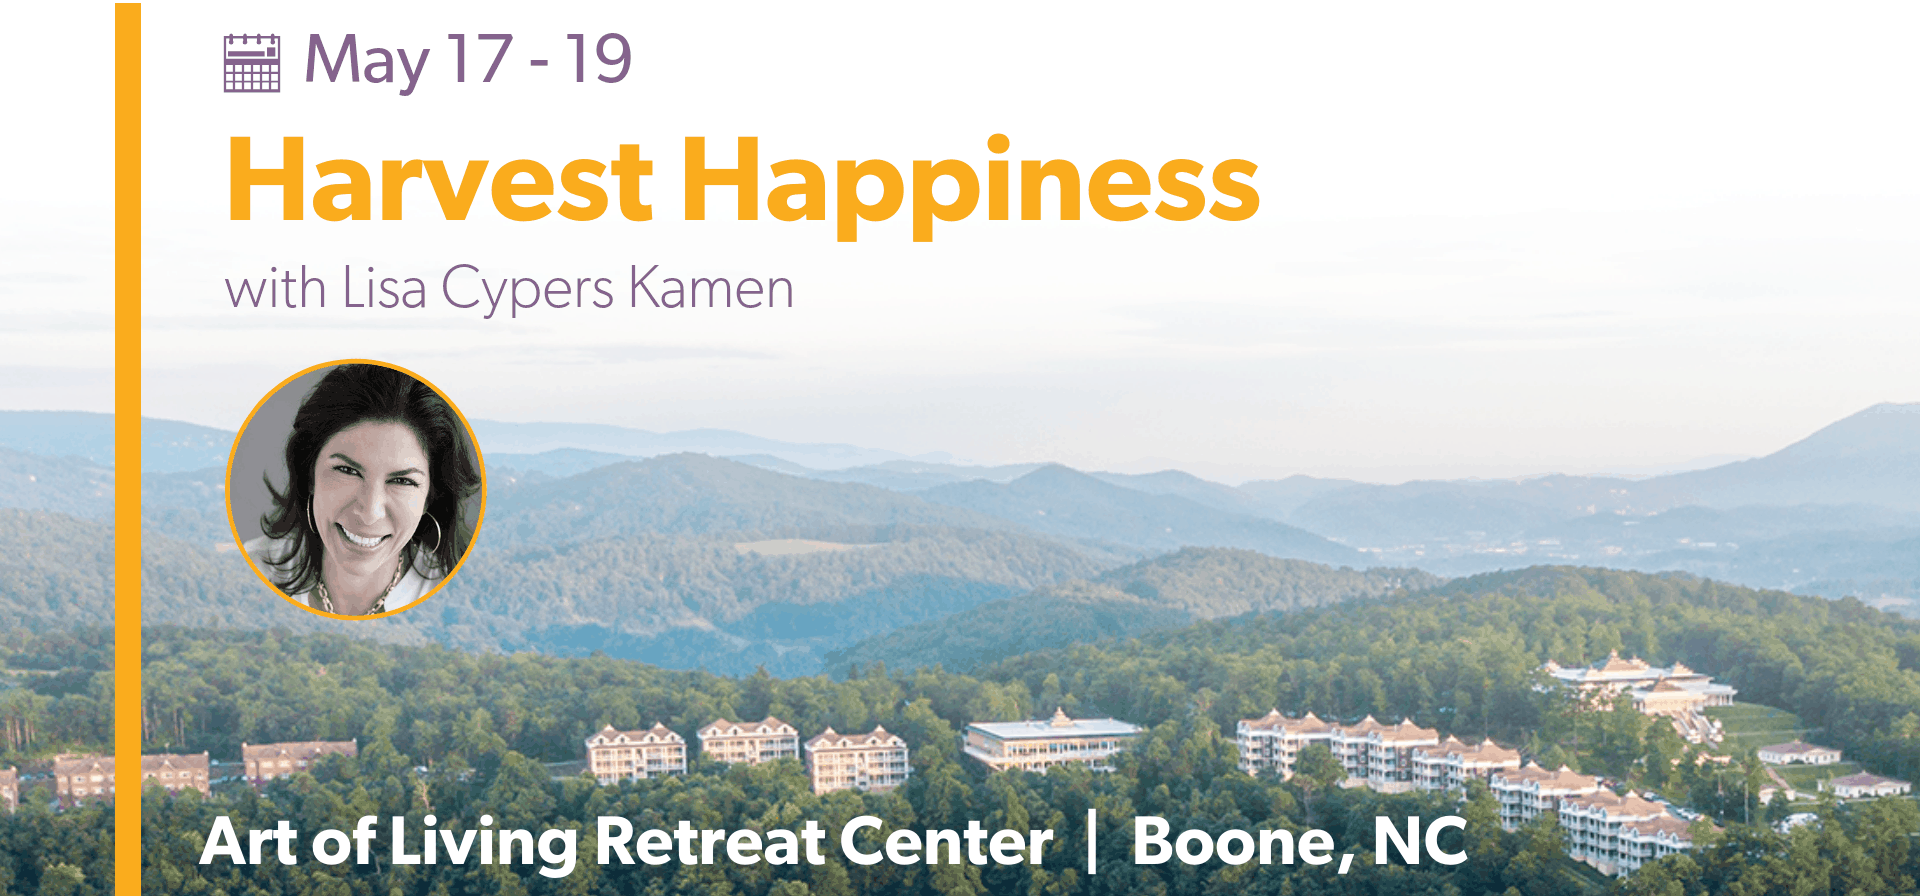 Lisa Cypers Kamen Speaker Art of Living Retreat Center